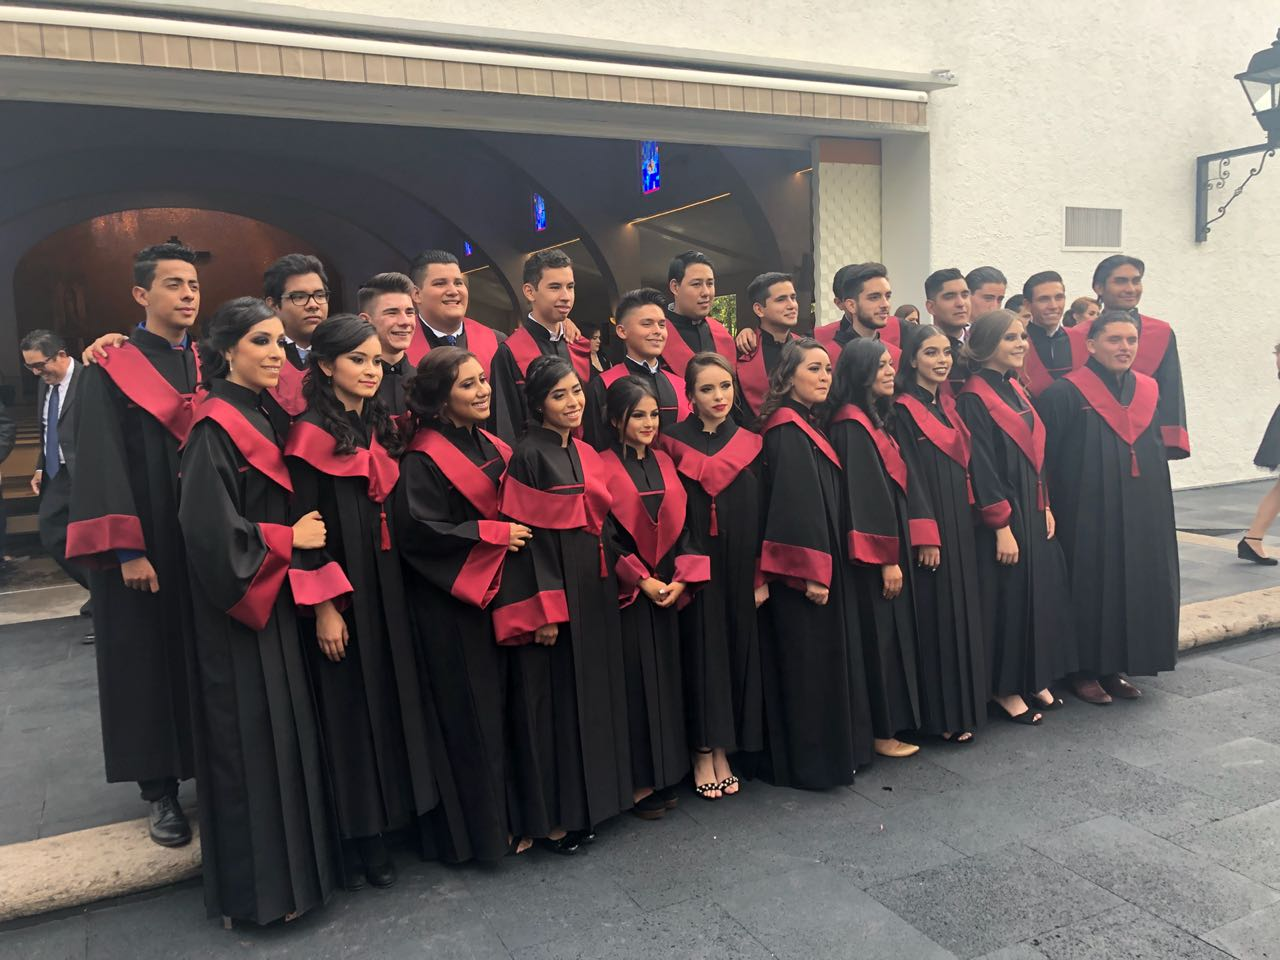 Mano Amiga Guadalajara first-ever class of graduating seniors. Felicidades!